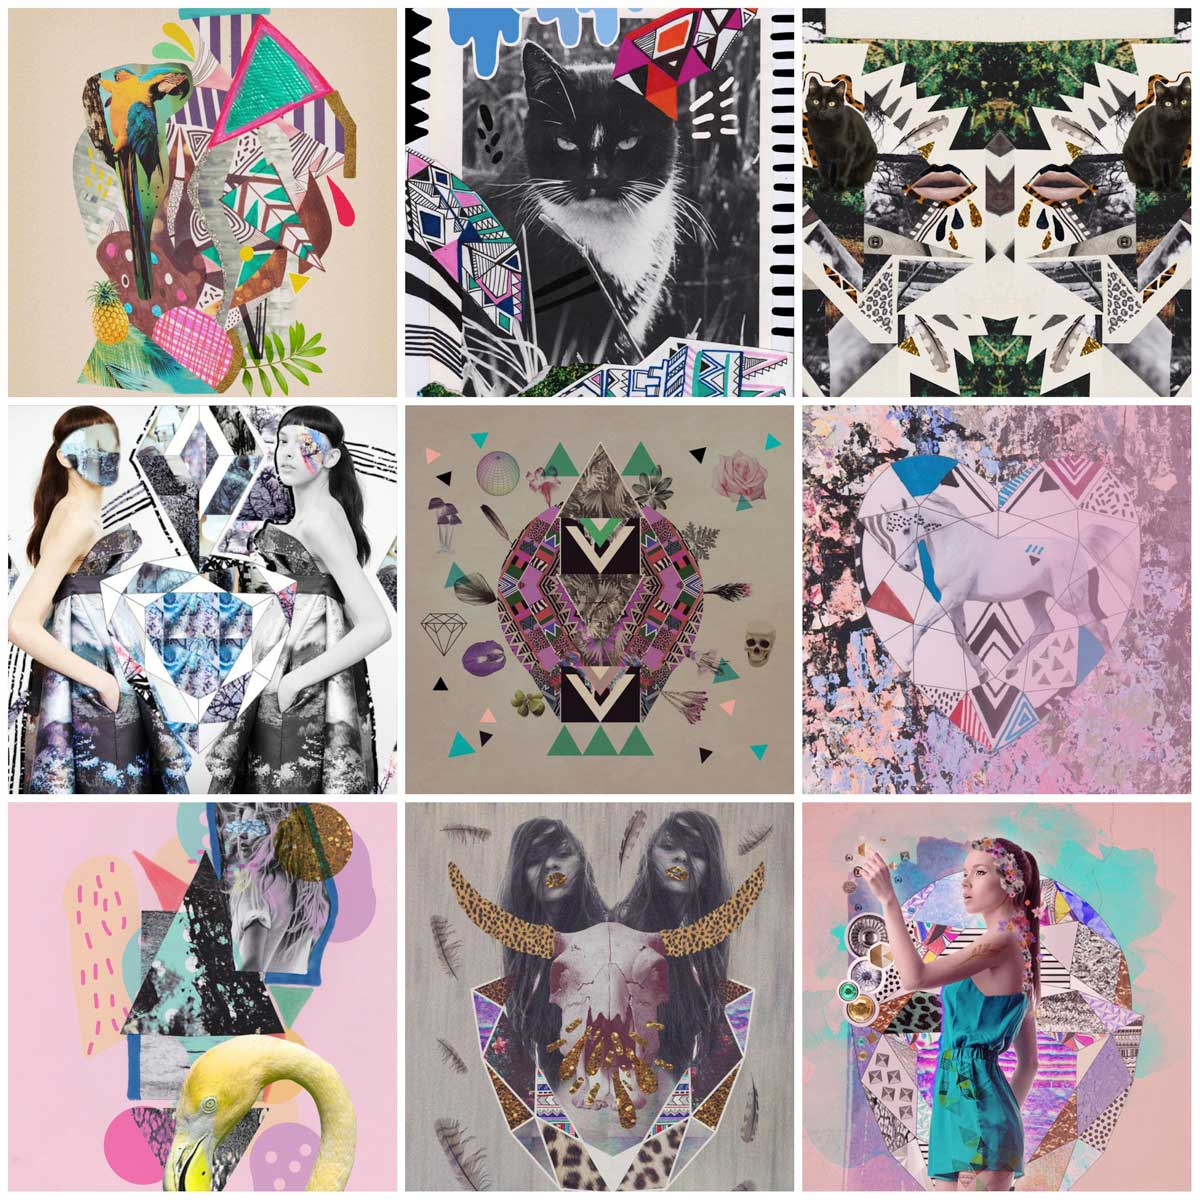 10 Examples Of Mixed Media Collage Art To Inspire You Graphic Design Creative Advertisement